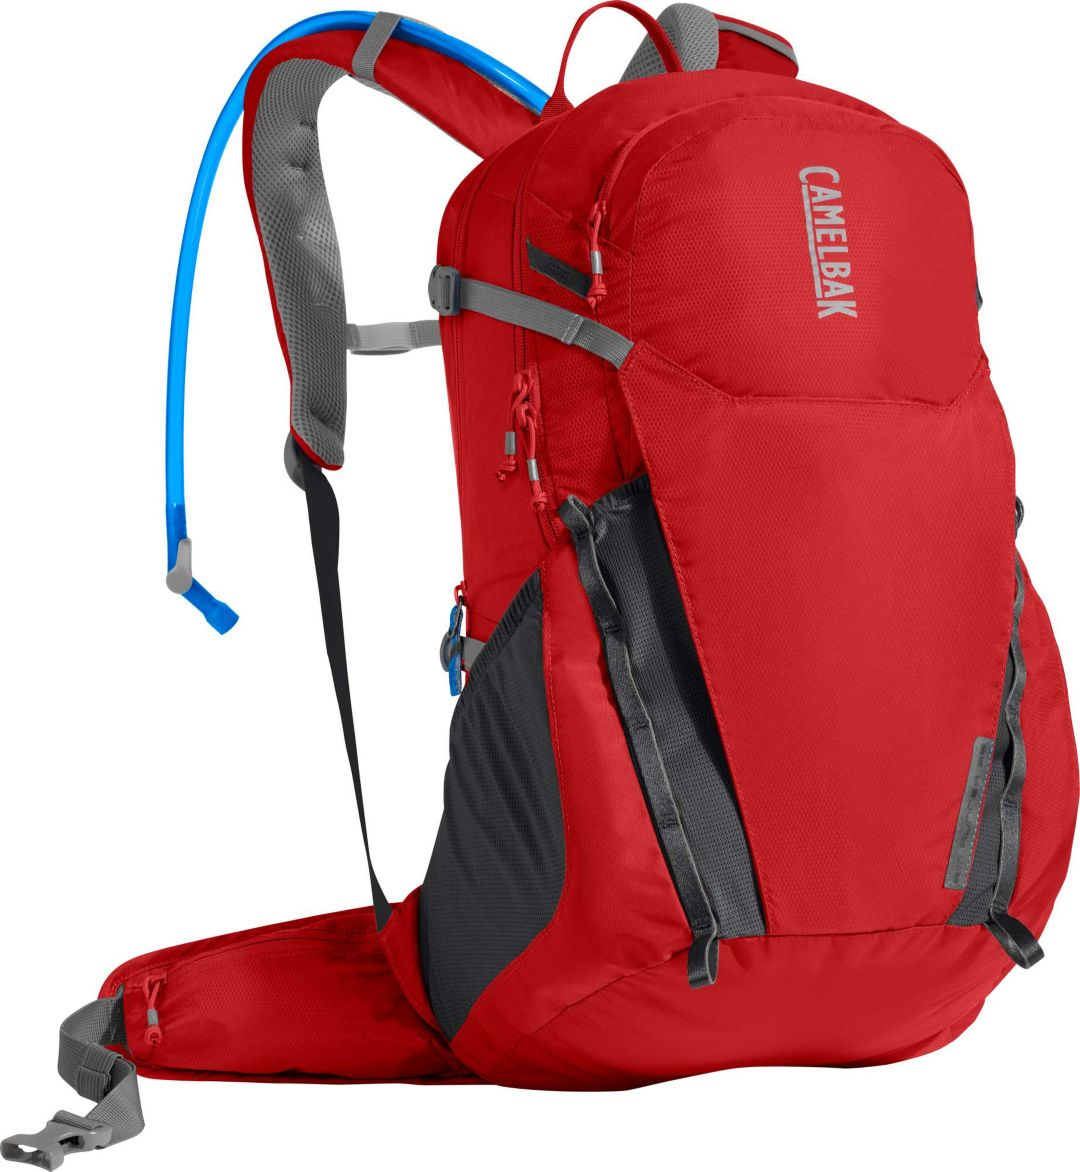 91cbed80c63 CamelBak Rim Runner 22L Hydration Pack | Field & Stream